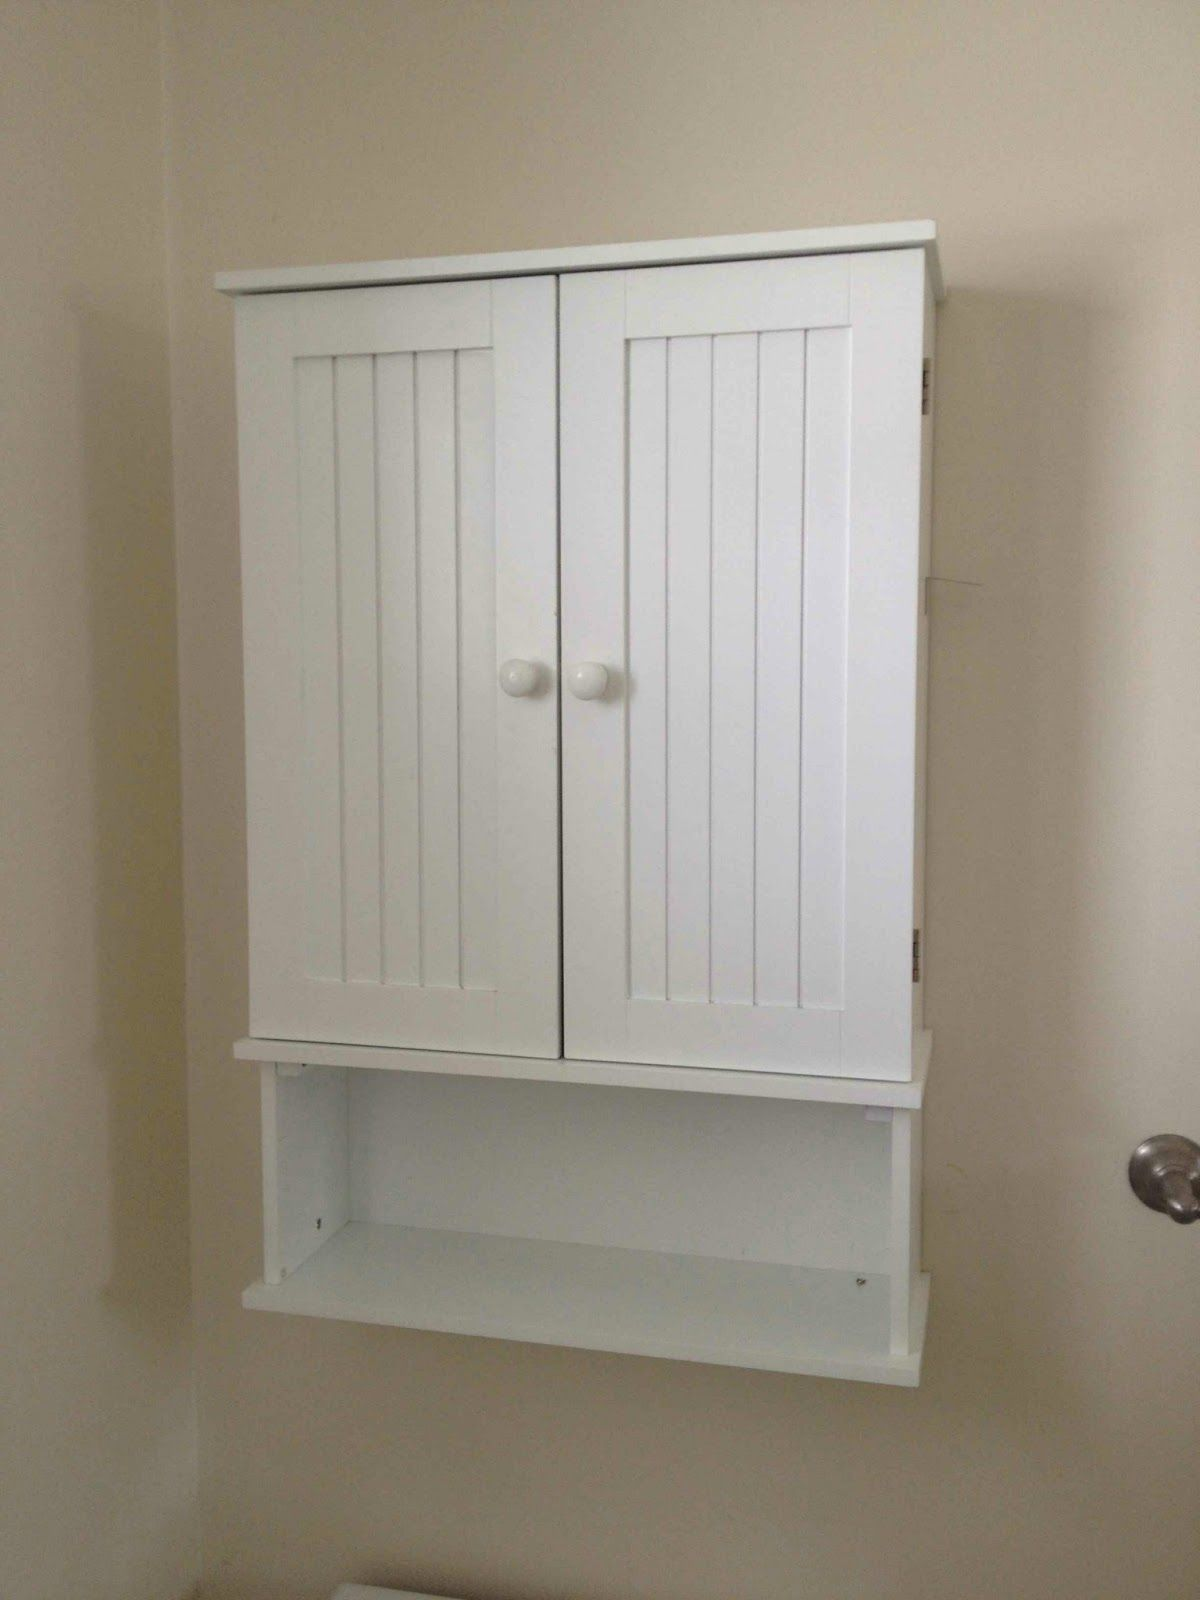 Amazing White Wooden Double Door And Single Shelves Wall Mount Cabinet Over  Toilet Storage Attach At